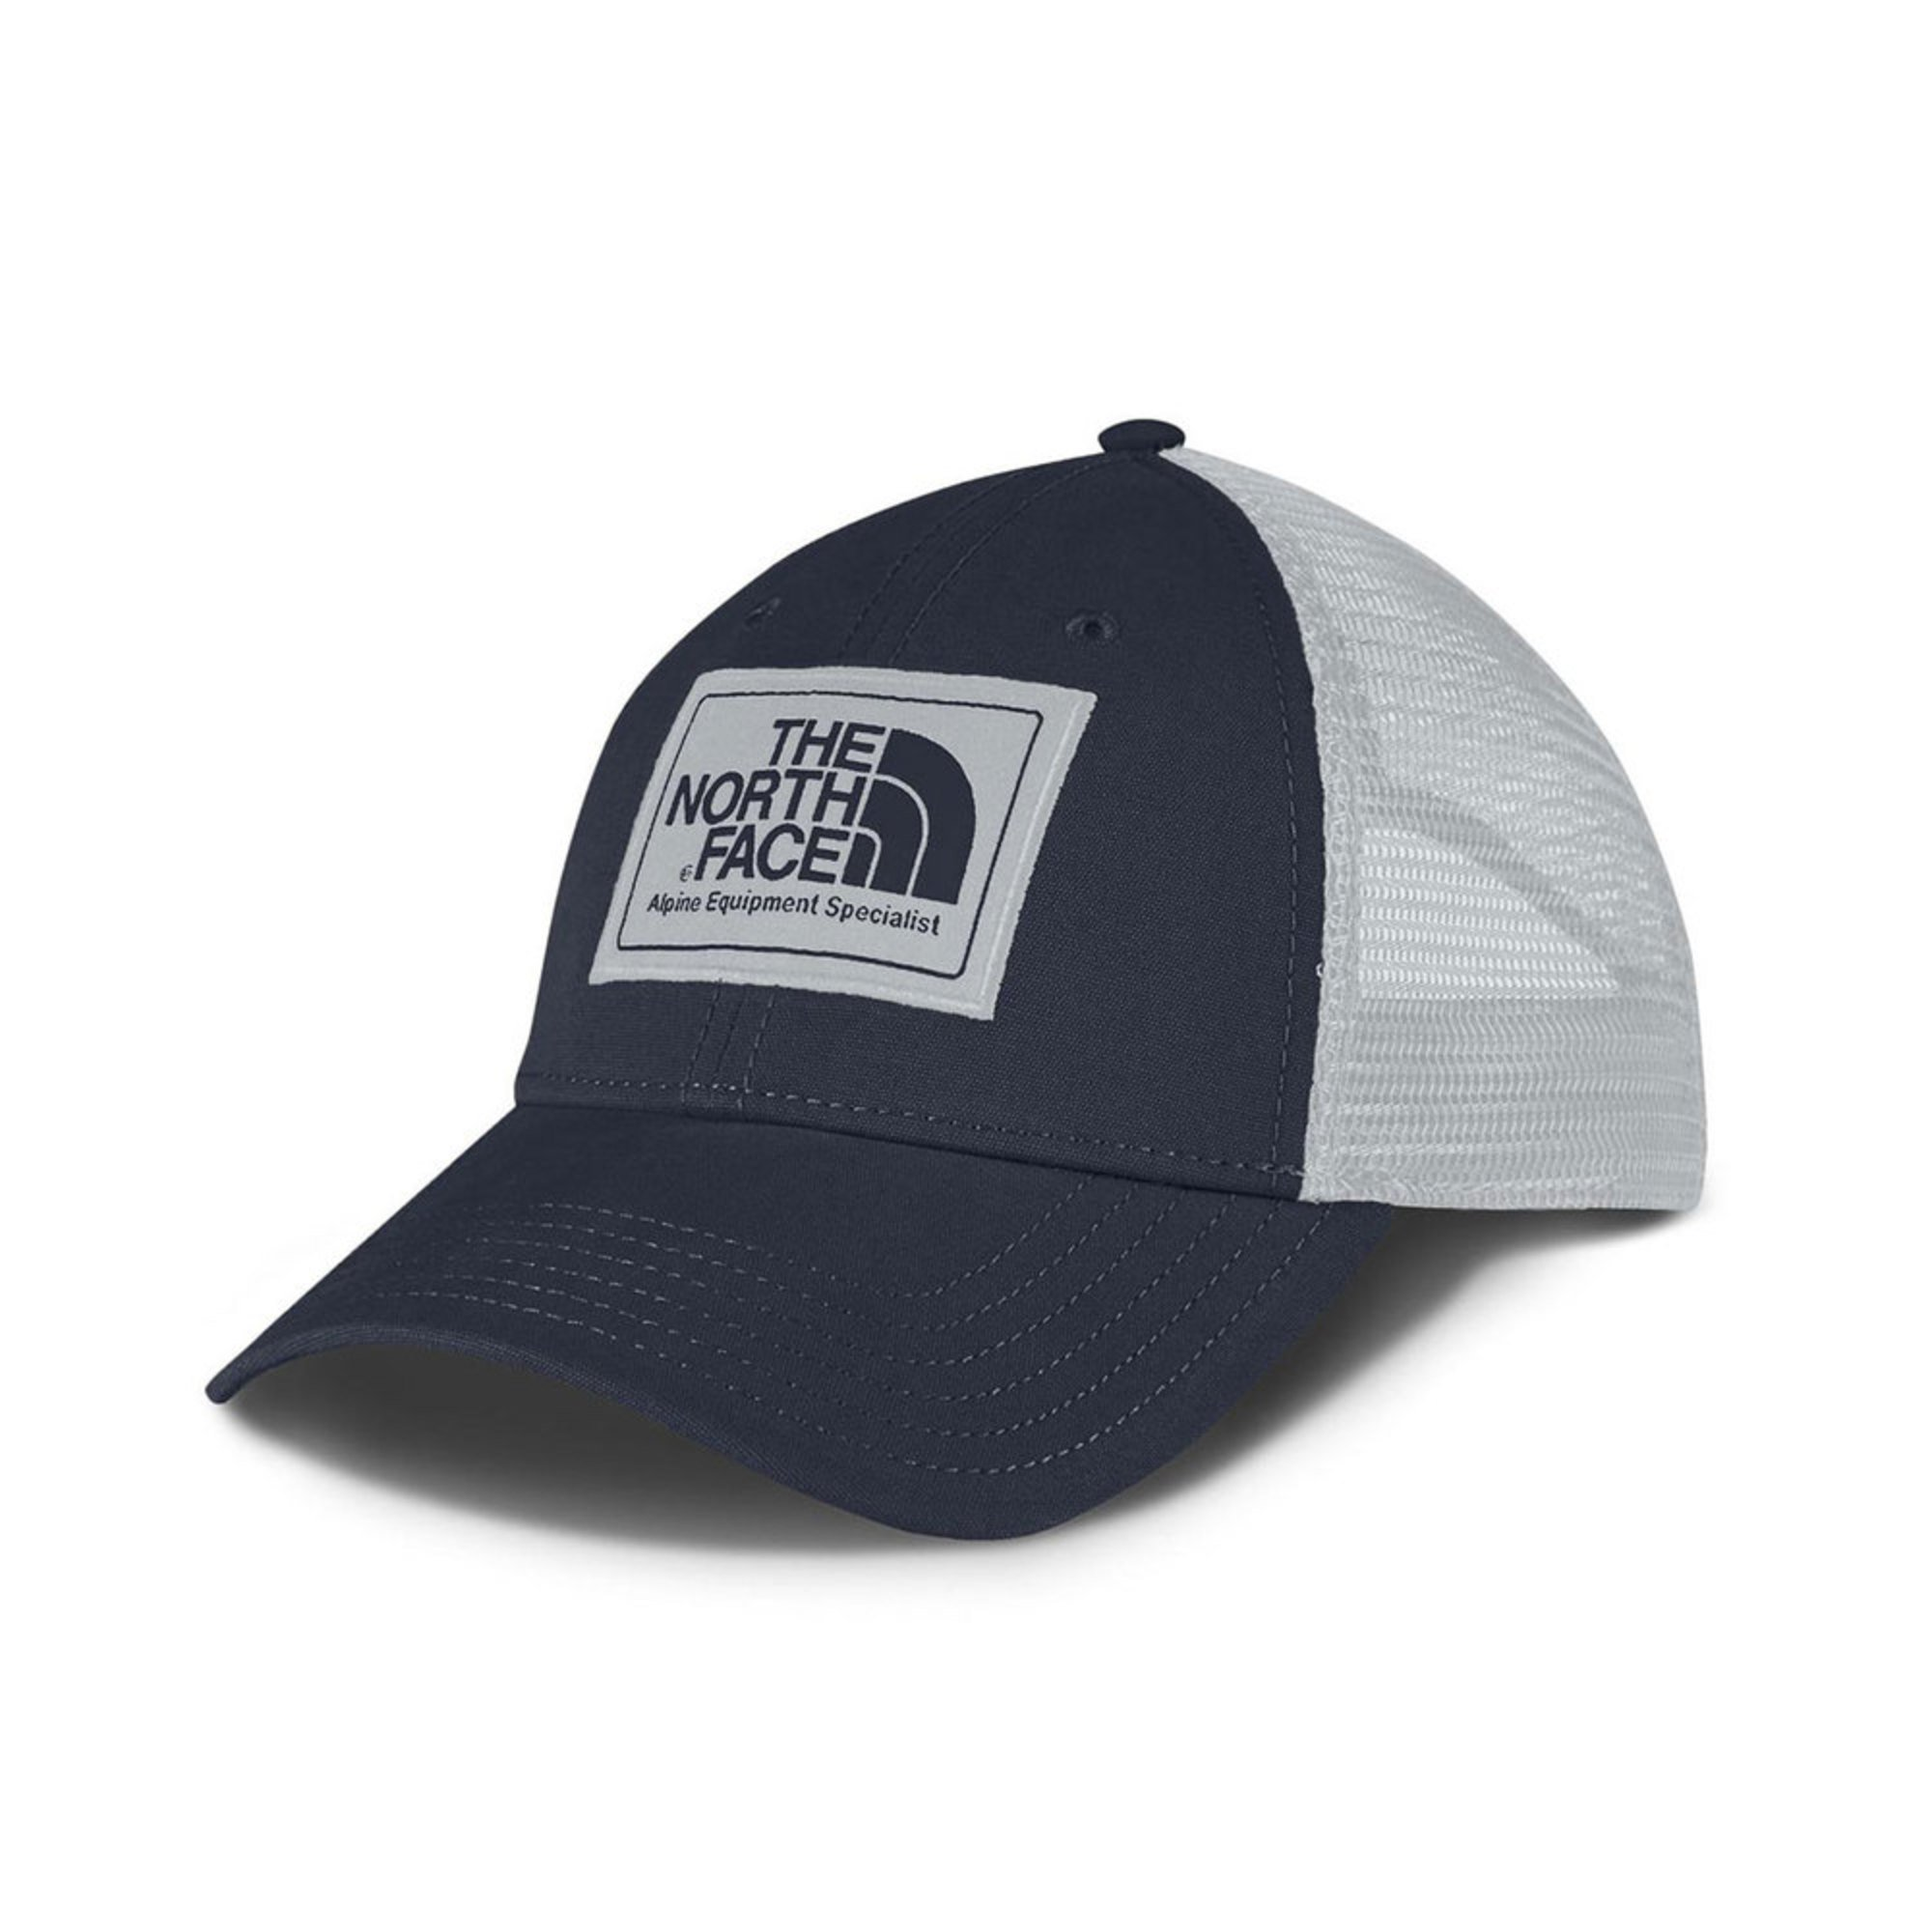 f6949ed9723 The North Face. The North Face Men s Mudder Trucker Hat